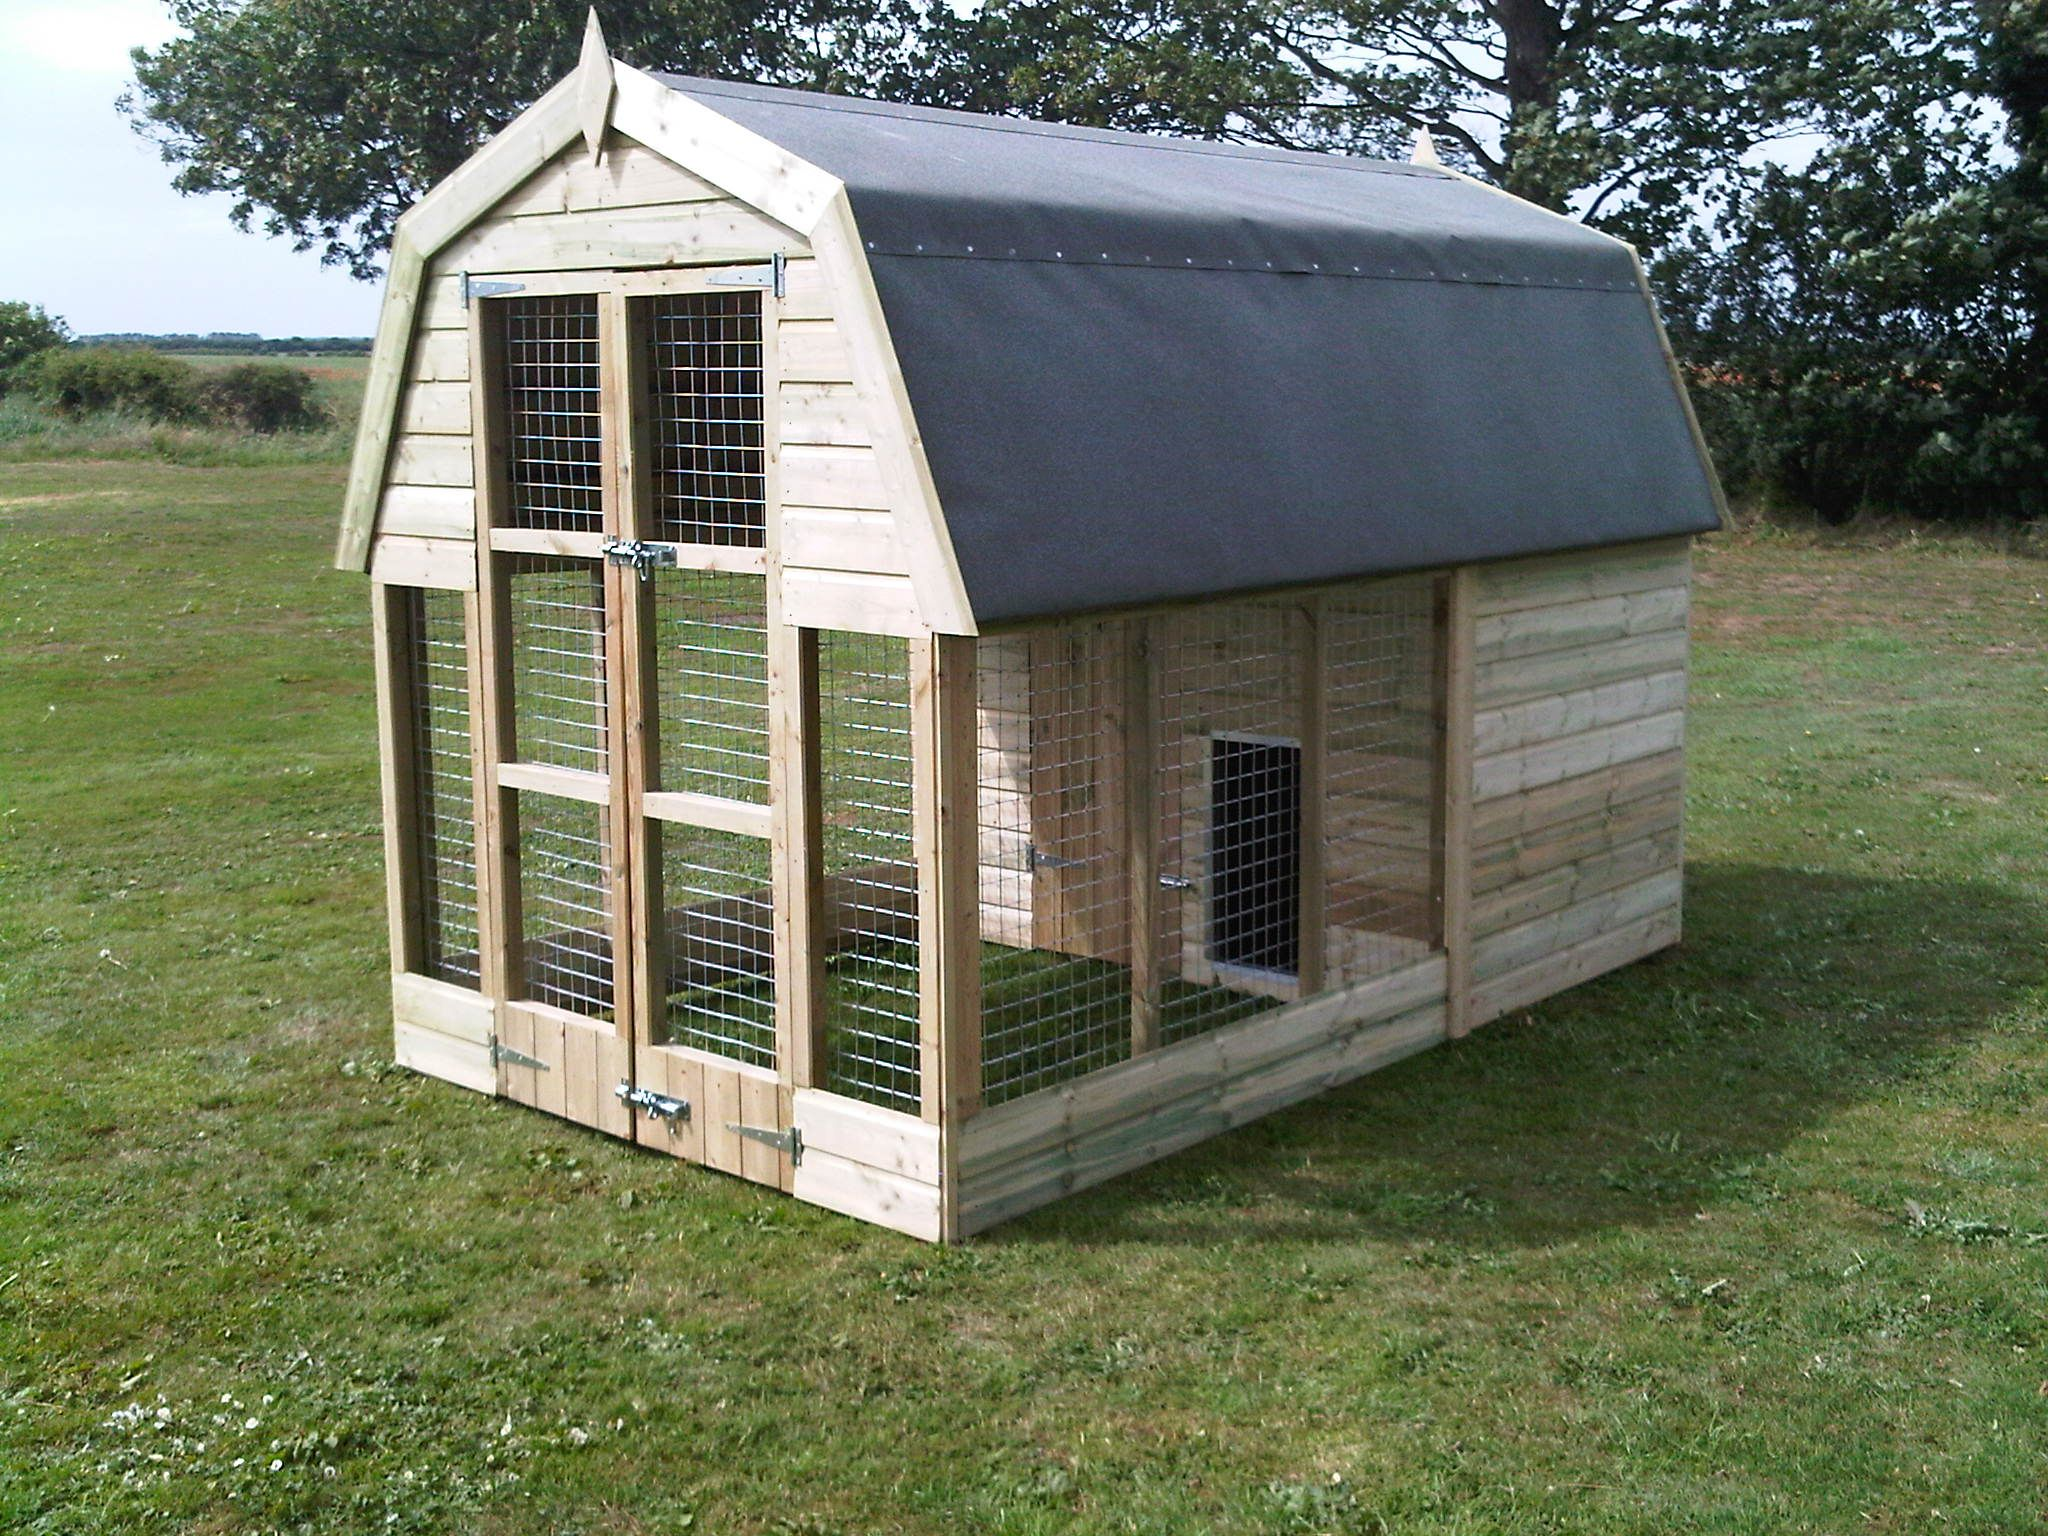 best dog kennels images on pinterest  kennel ideas dog kennel  - find this pin and more on dog kennels by topkhandler